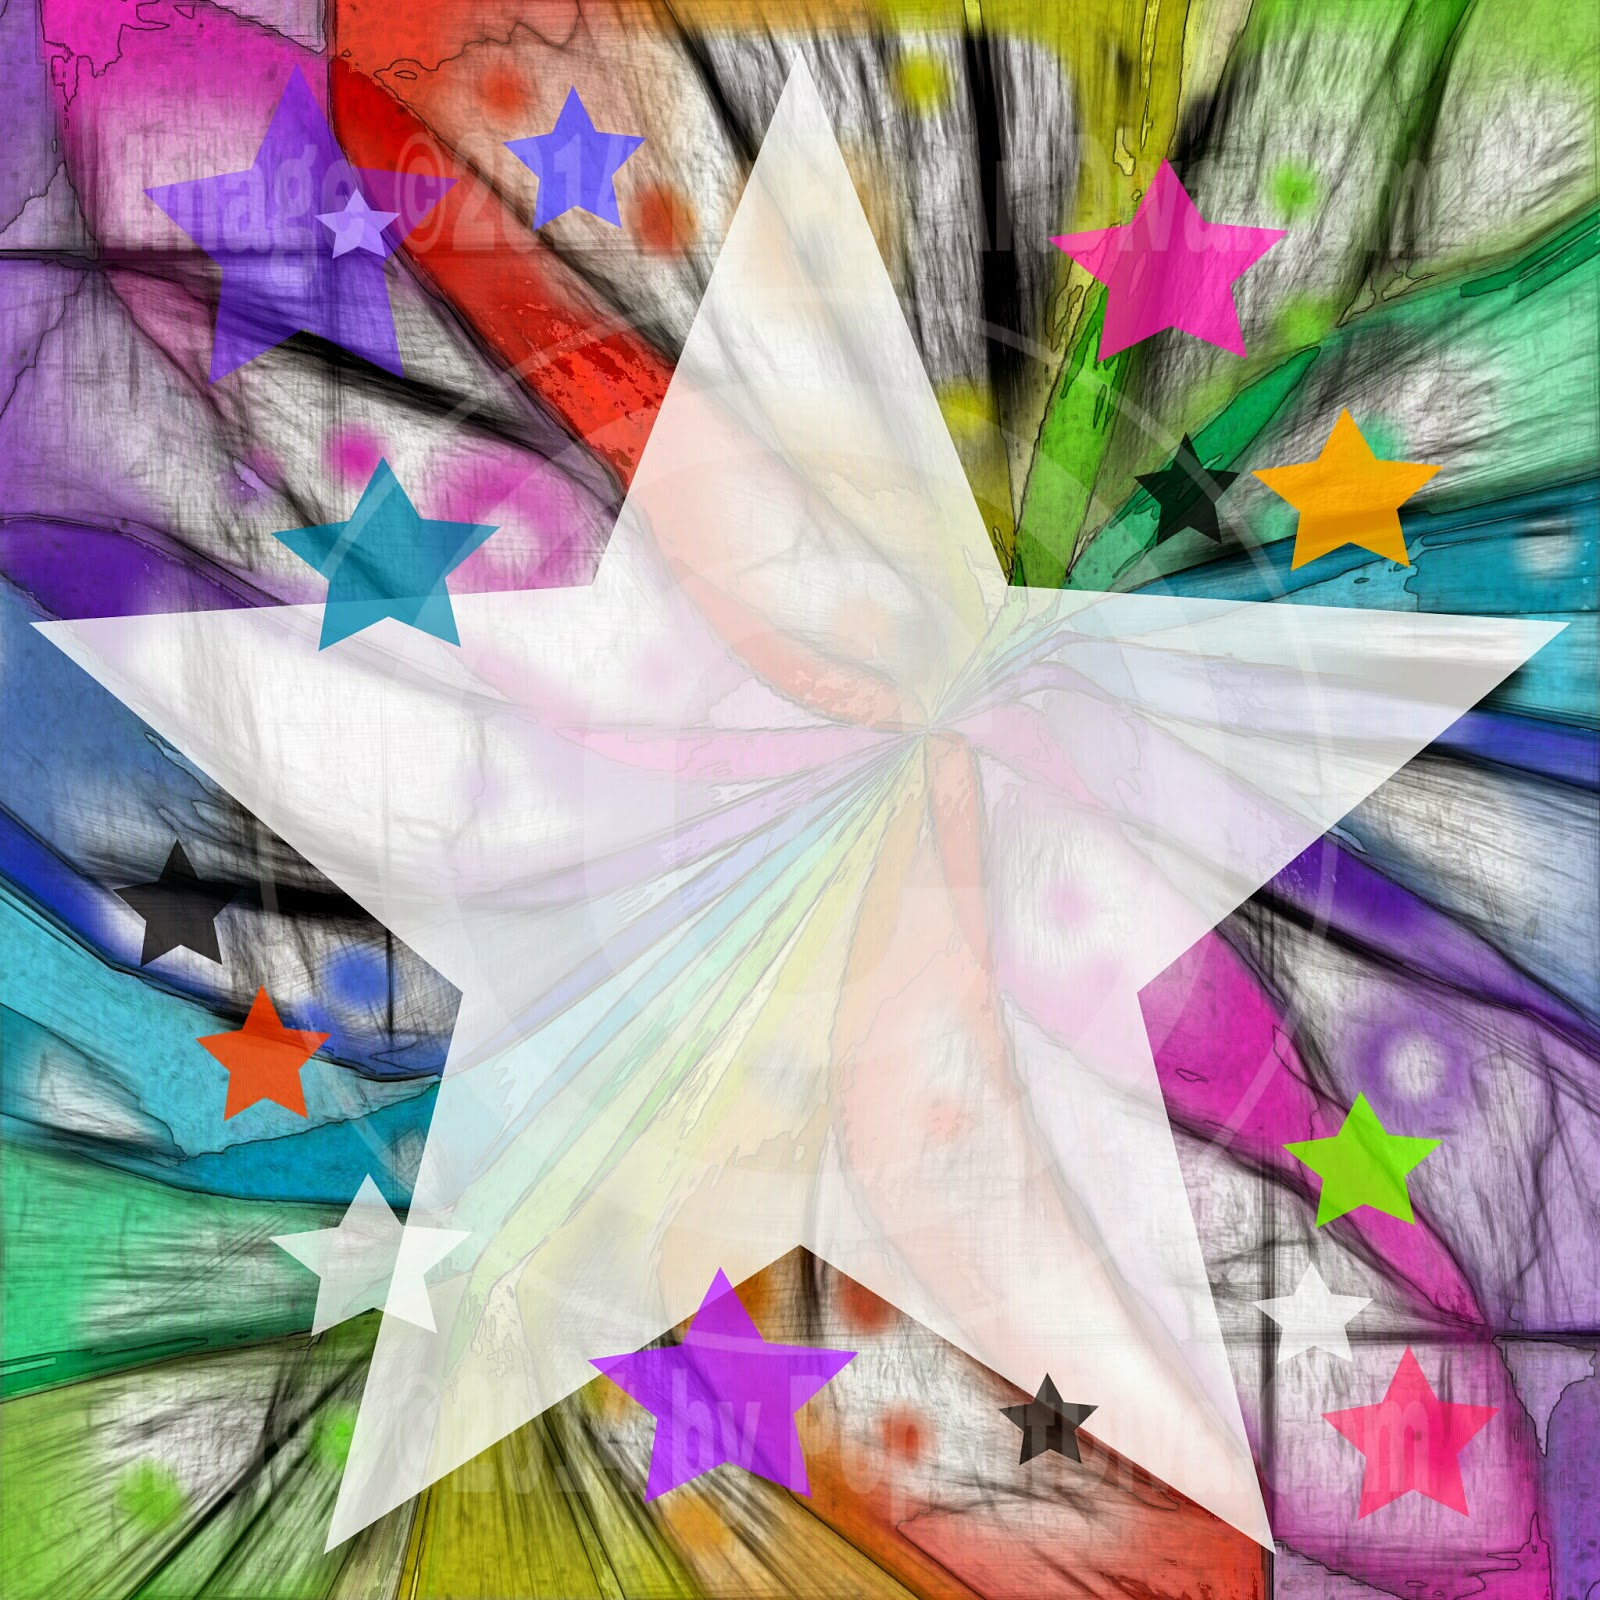 http://store.payloadz.com/details/2084287-photos-and-images-clip-art-kaleidoscope-star-frame-border-web-graphic.html